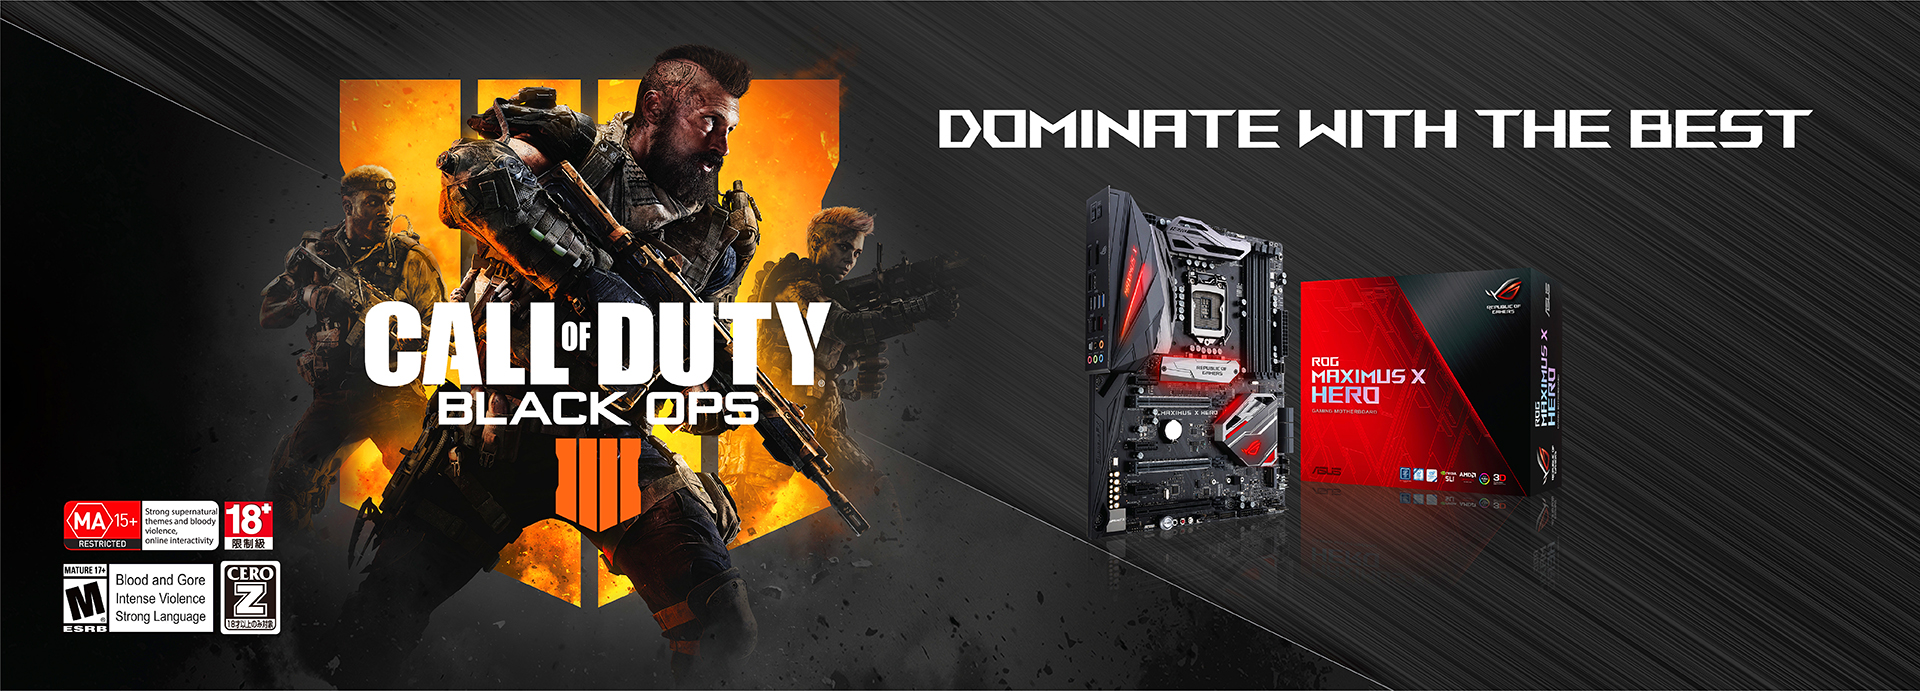 ROG Call of Duty Black Ops 4 | ASUS Singapore